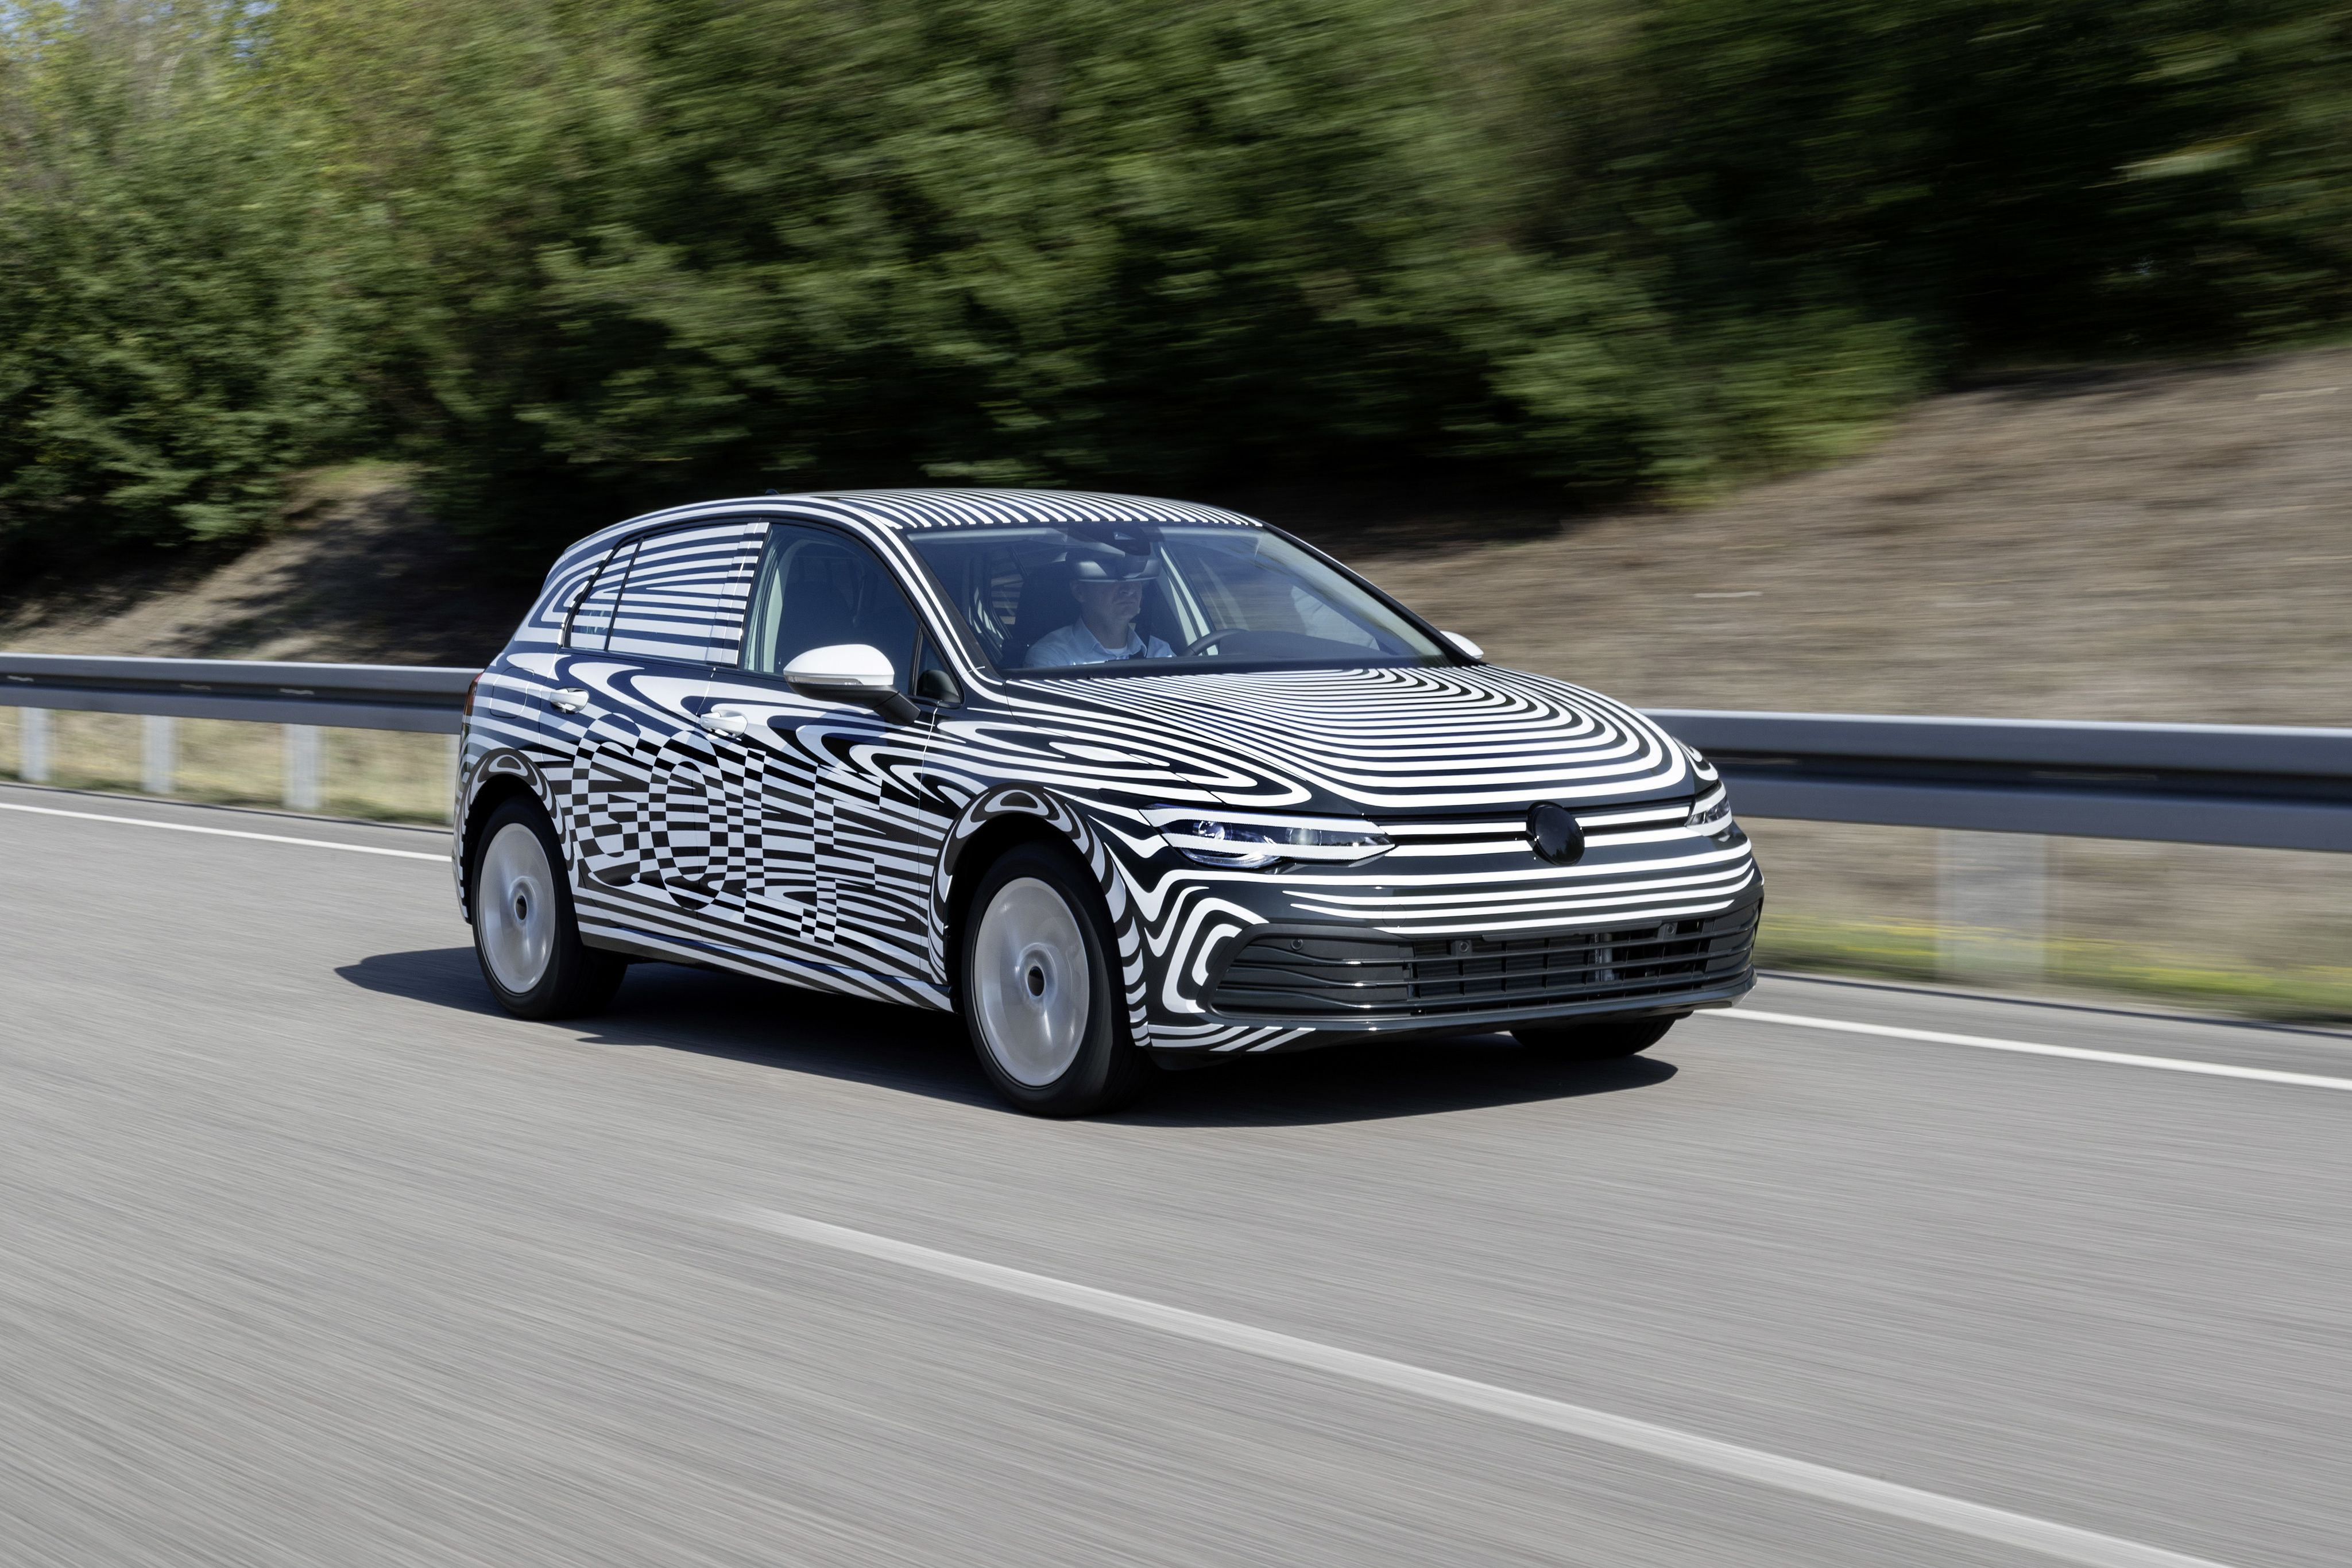 Here's Our First Official Look at the Mk8 Volkswagen Golf Hatchback